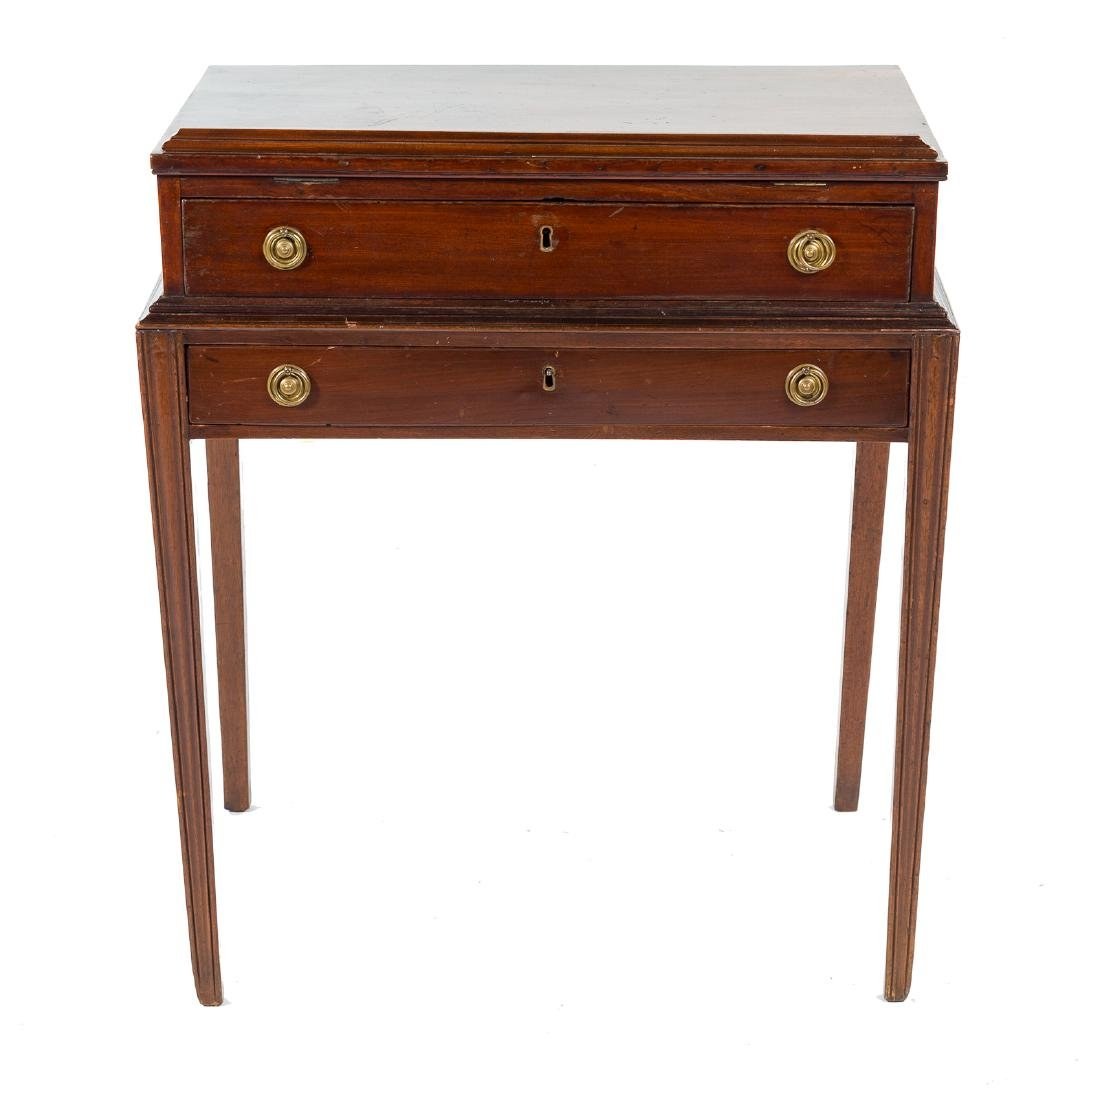 George III style mahogany architect's desk - 2